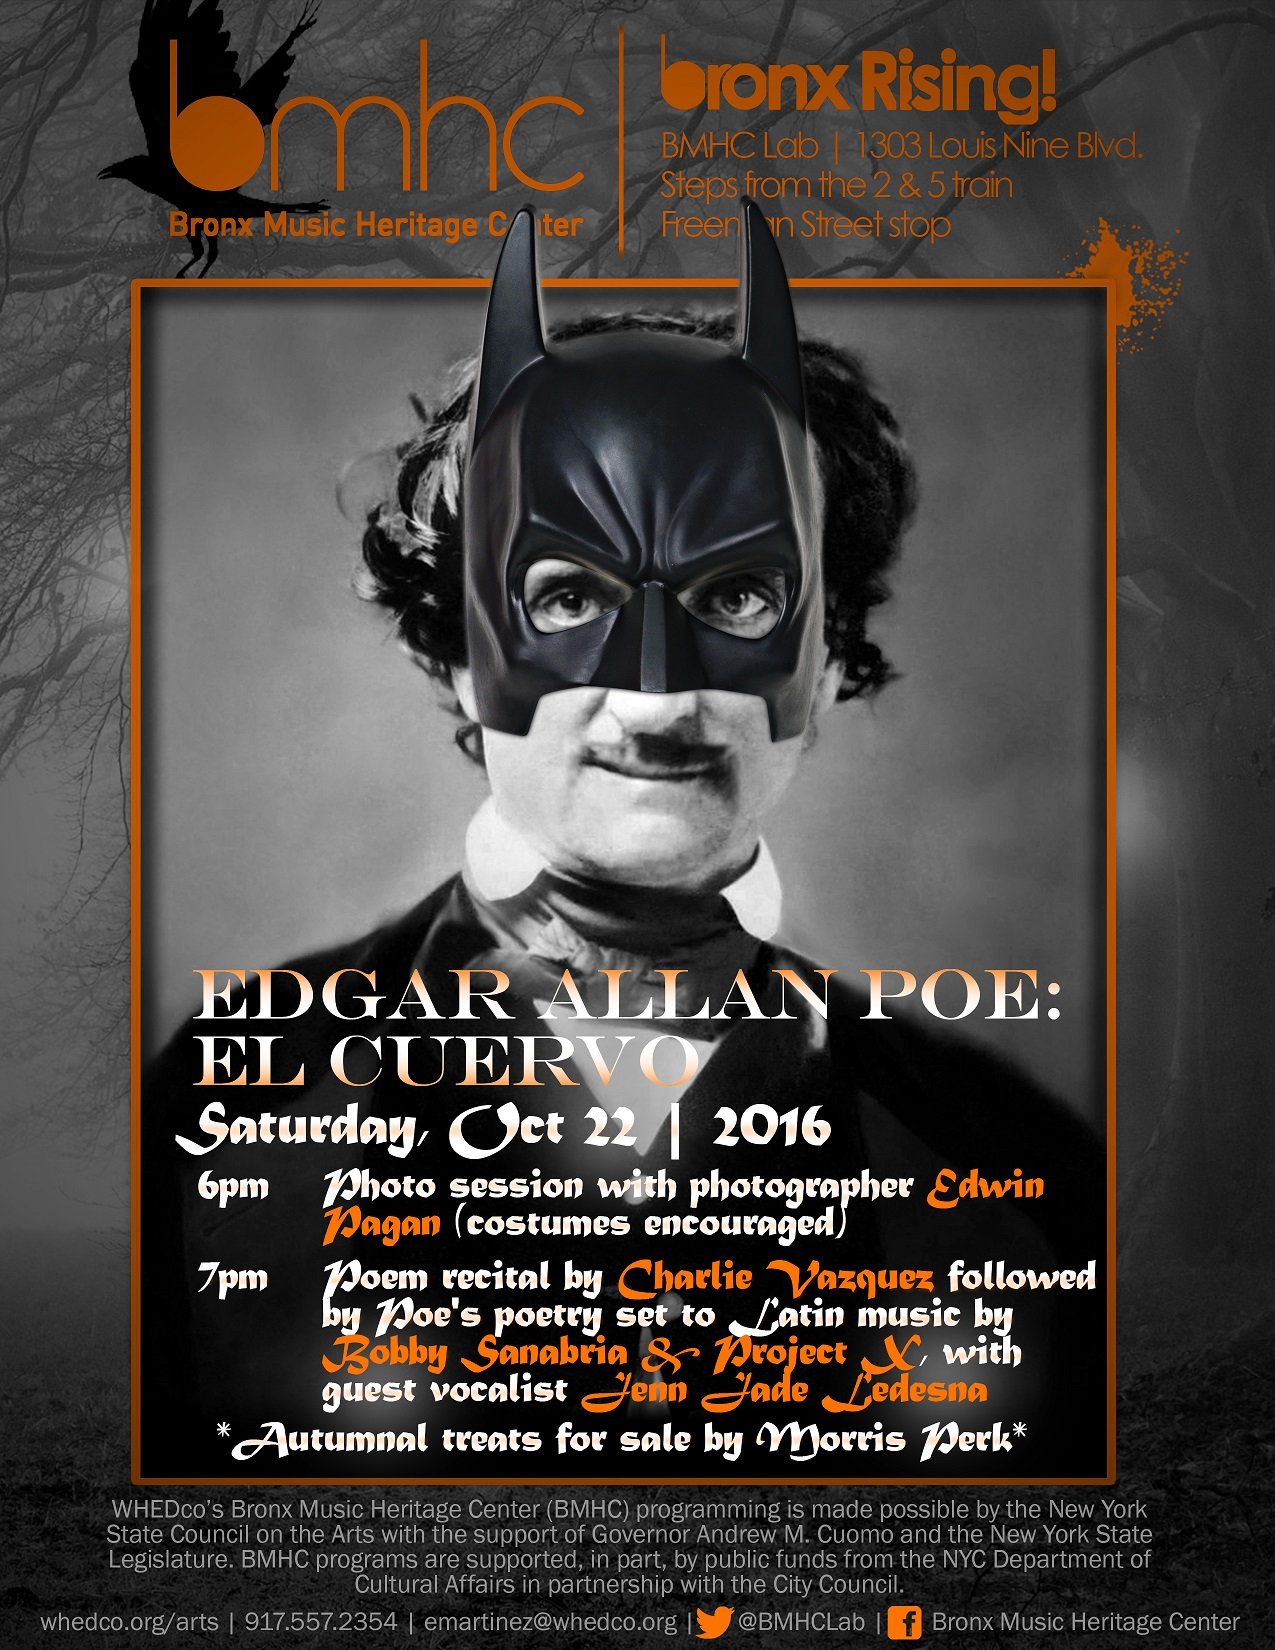 Flyer for October Bronx Rising, Edgar Allan Poe, at Bronx Music Heritage Center lab.